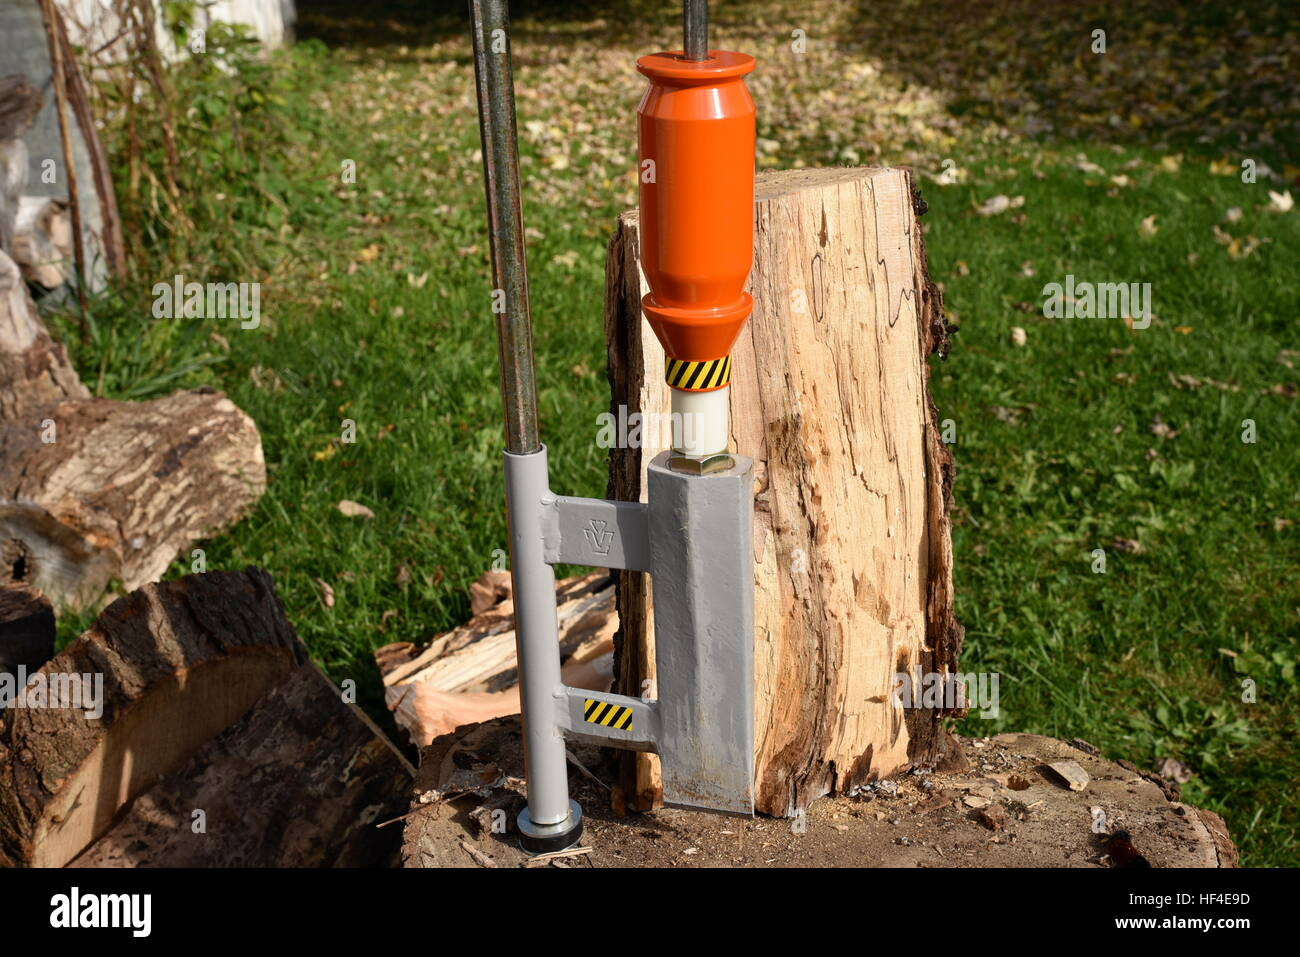 Smart Splitter for safely and efficiently splitting wood for heating a home. - Stock Image